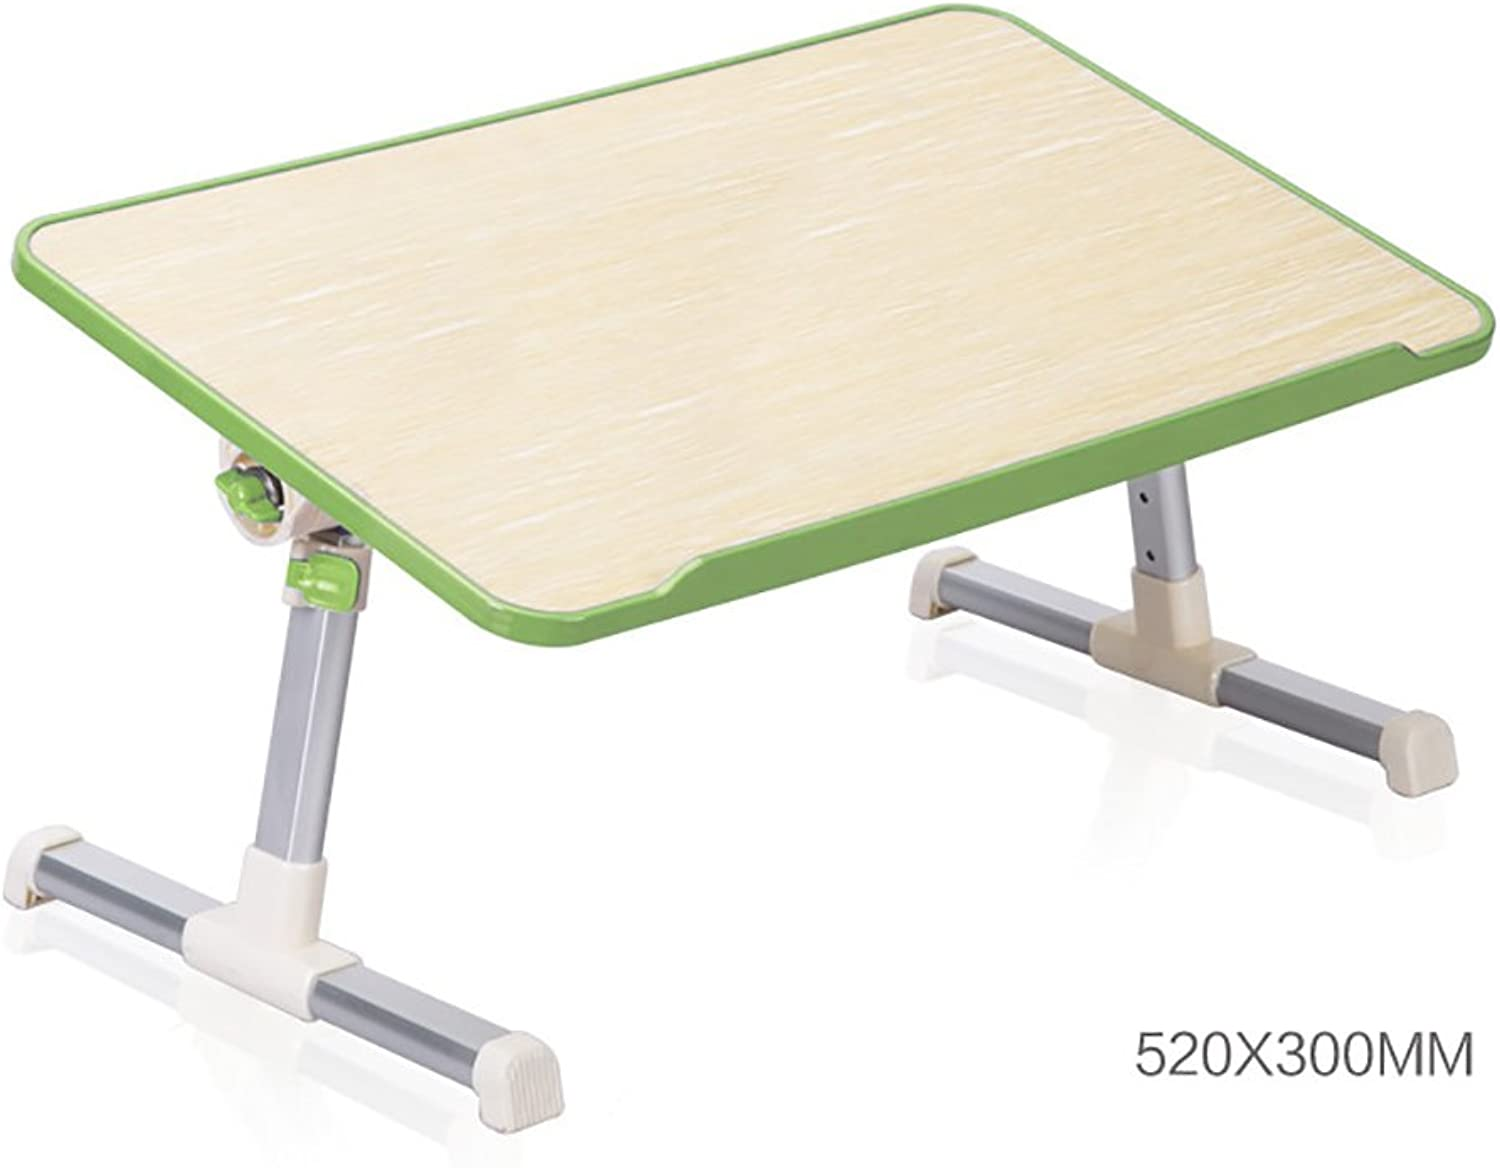 Laptop Desk Learn Folding Tables There Is A Fan Small Table Heat Dissipation ( color   6  )